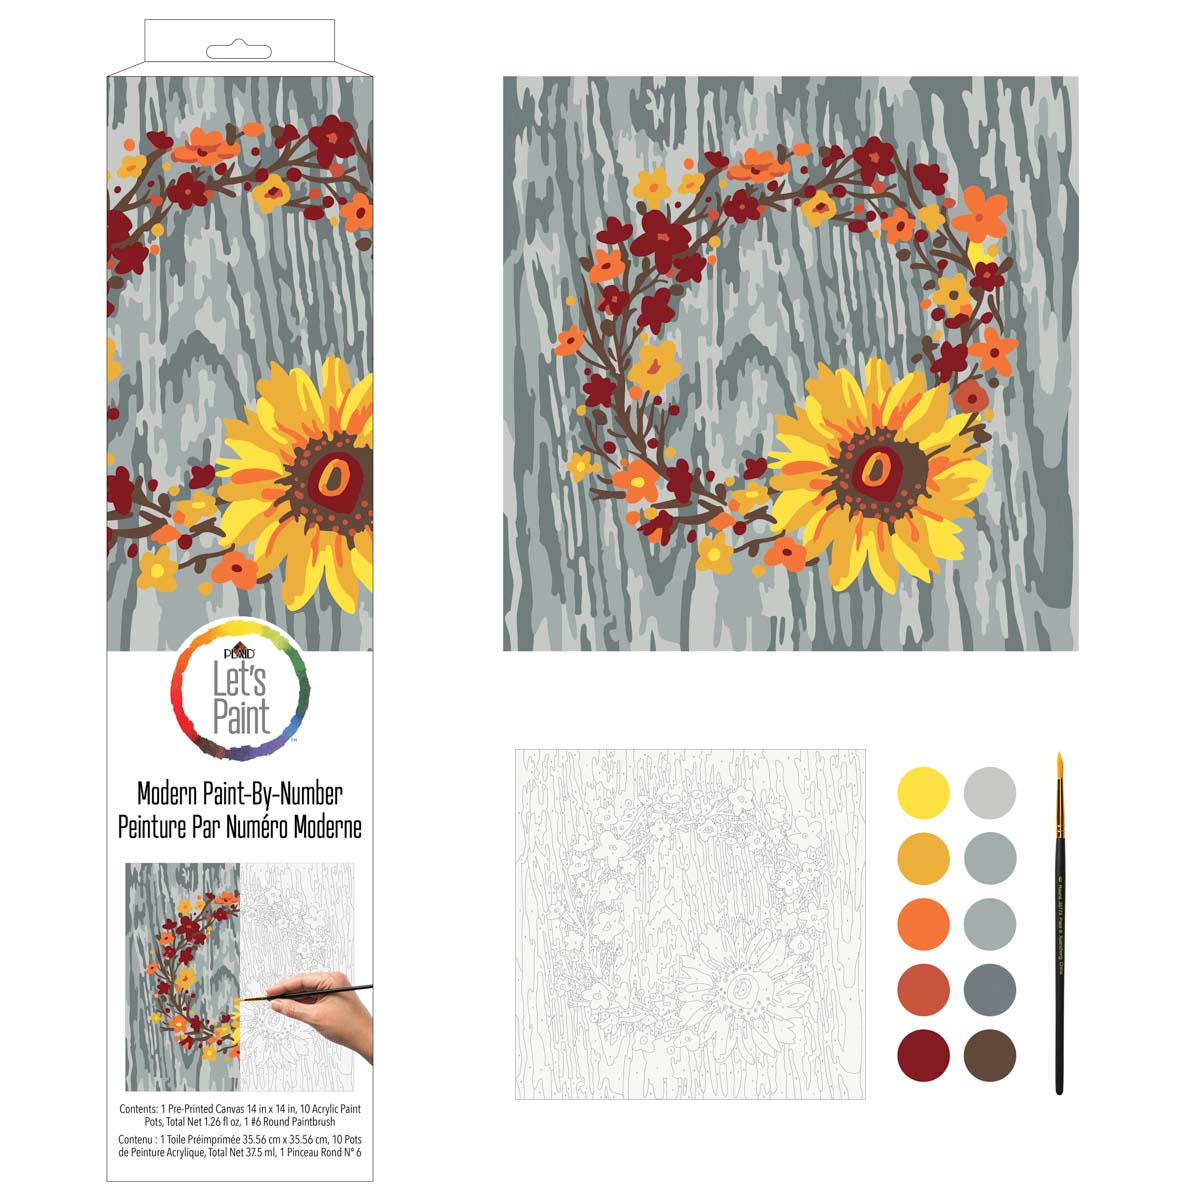 Plaid ® Let's Paint™ Modern Paint-by-Number - Fall Wreath - 17913